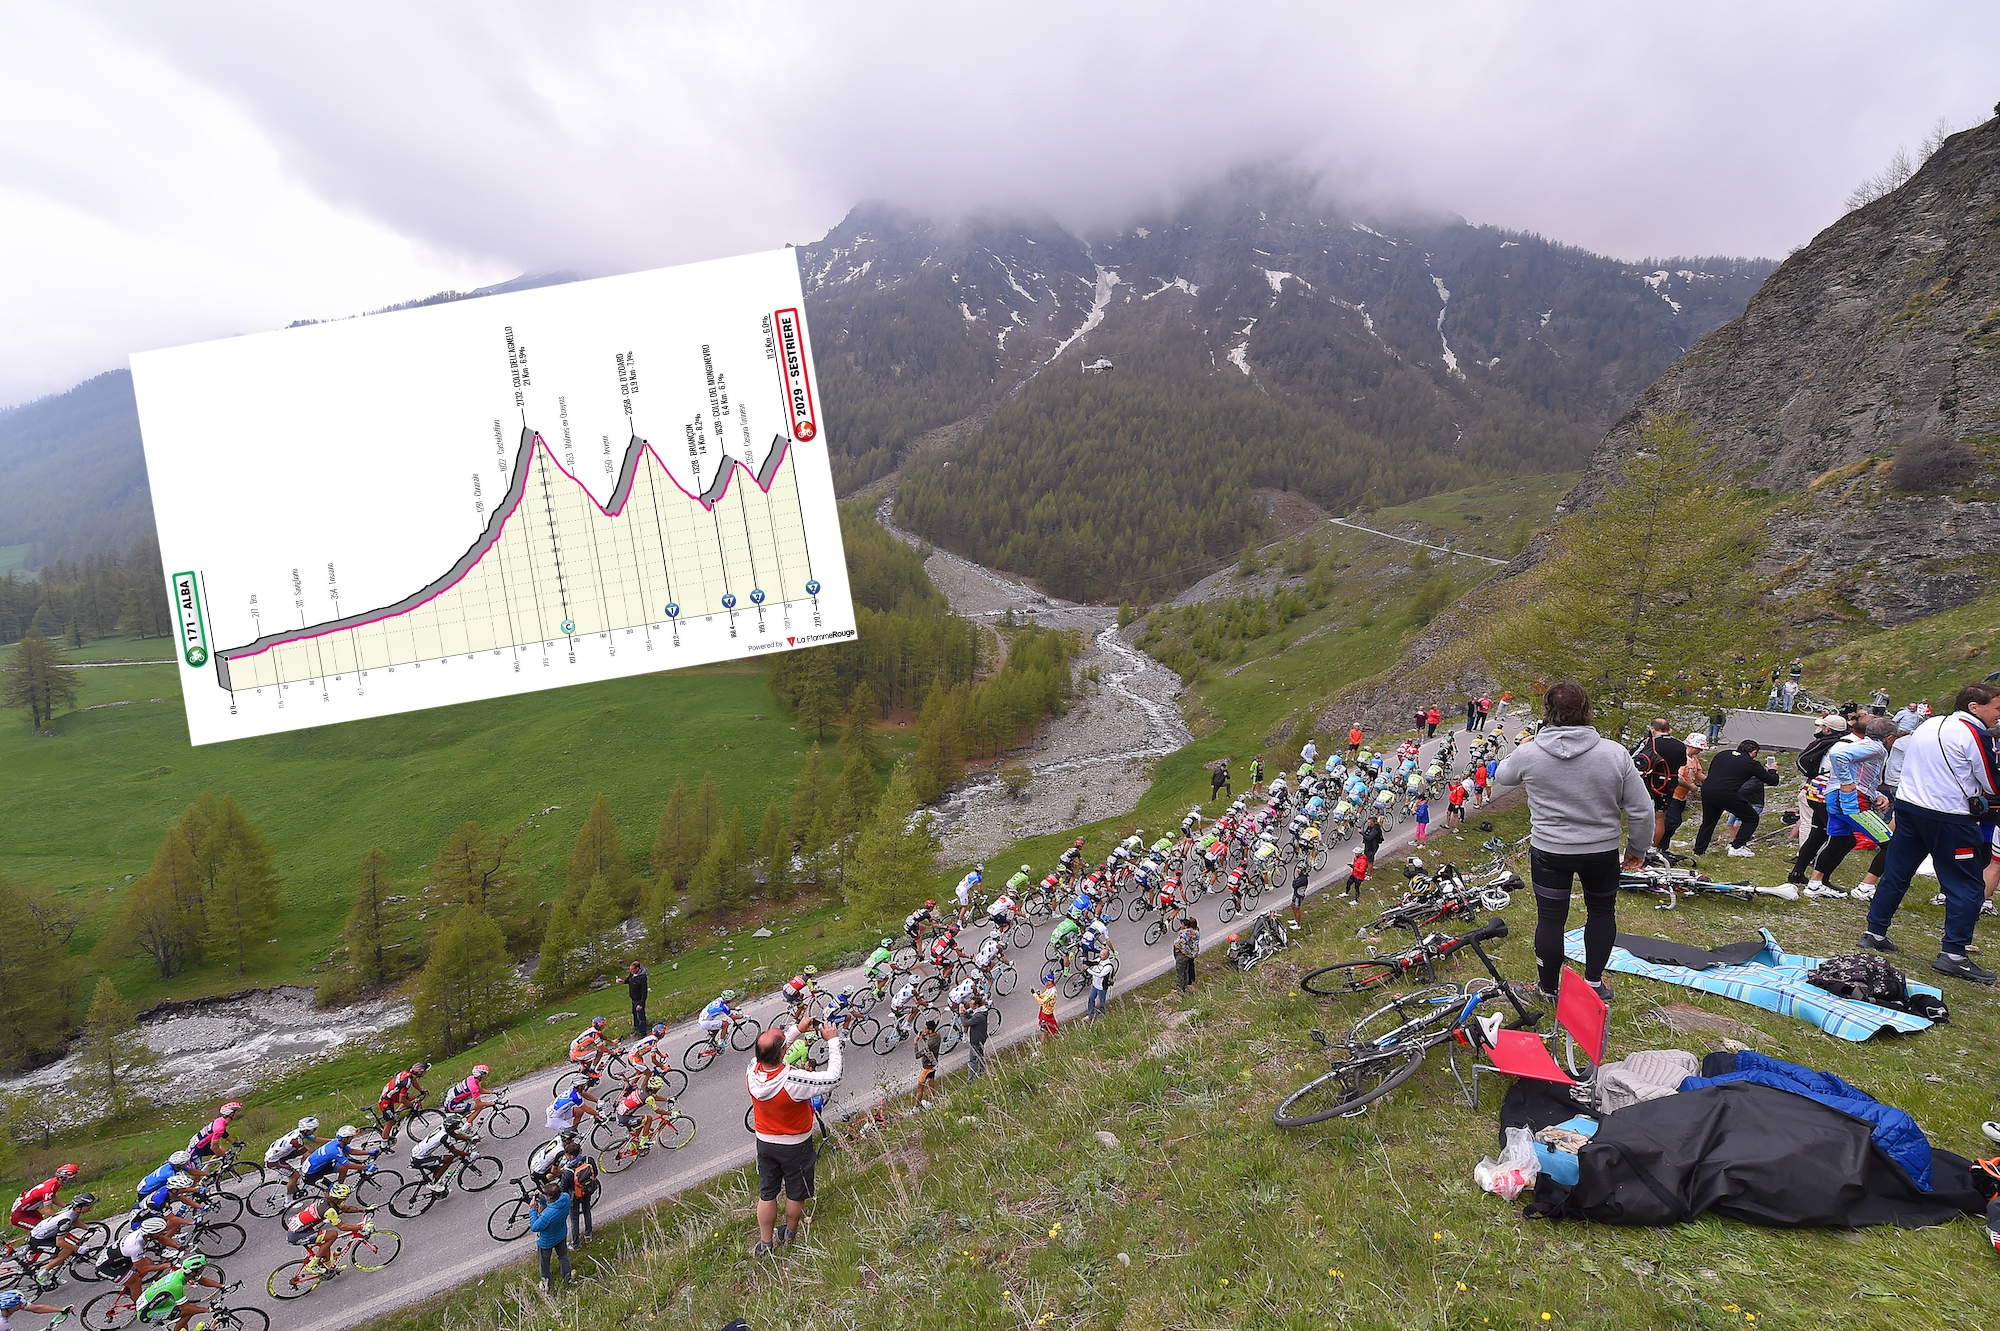 Is this the profile for the rumoured monstrous queen stage of the Giro d'Italia 2020?